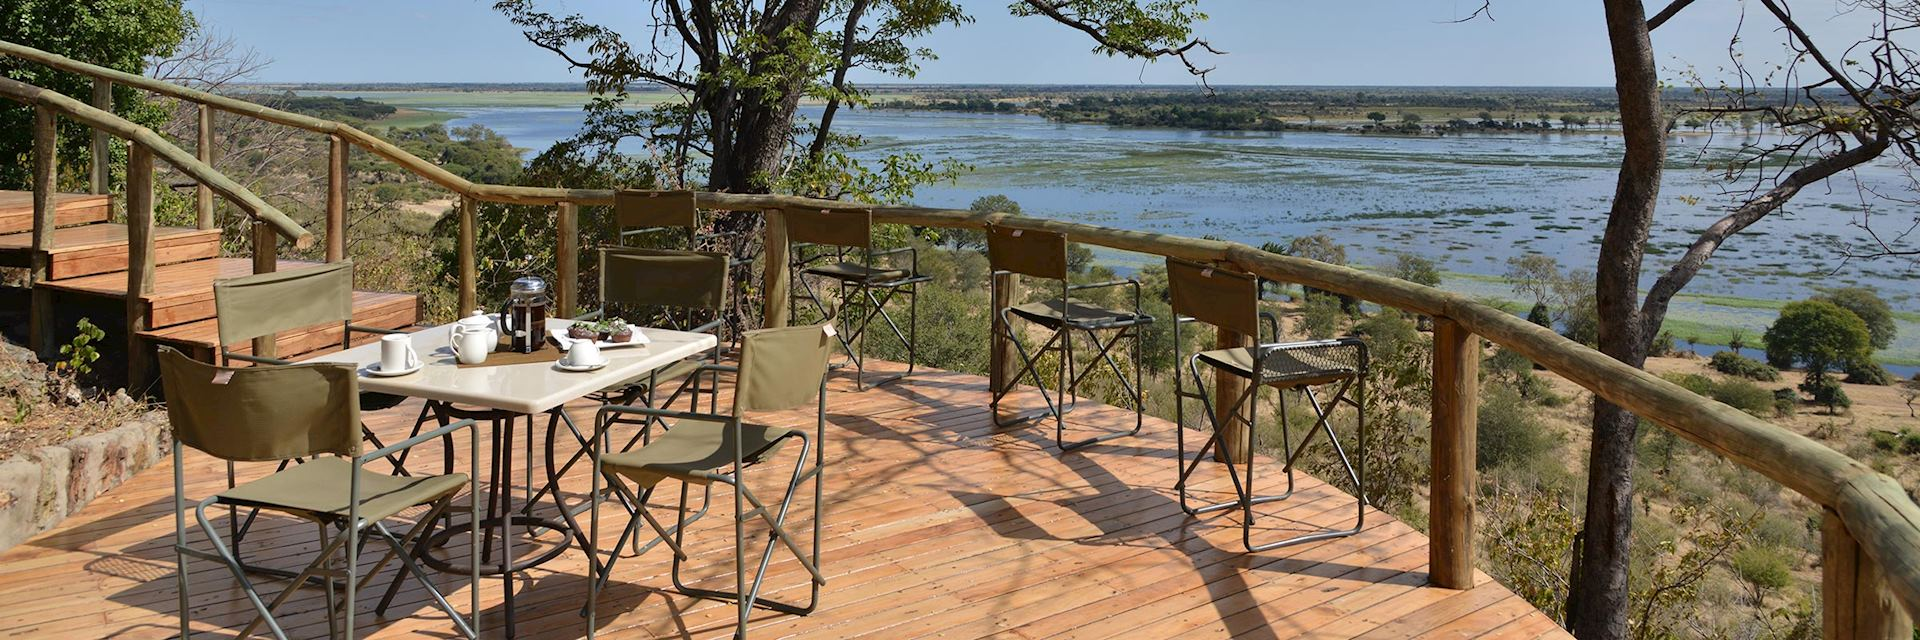 Muchenje Safari Lodge, Chobe National Park